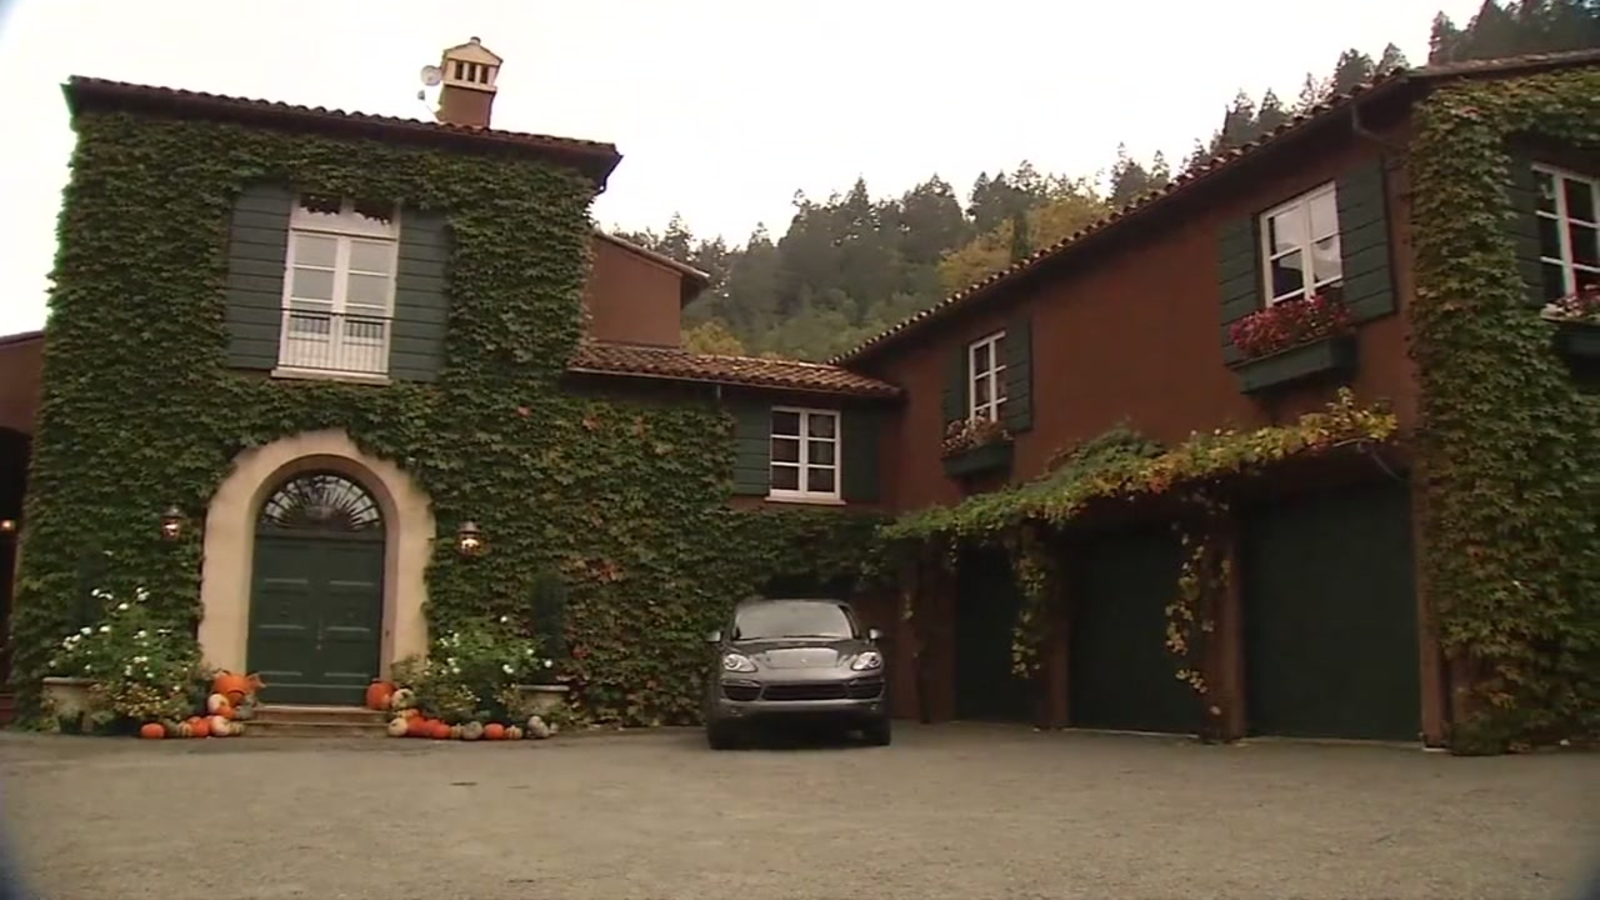 Parent Trap House In Napa Valley Survived Tragic North Bay Fires